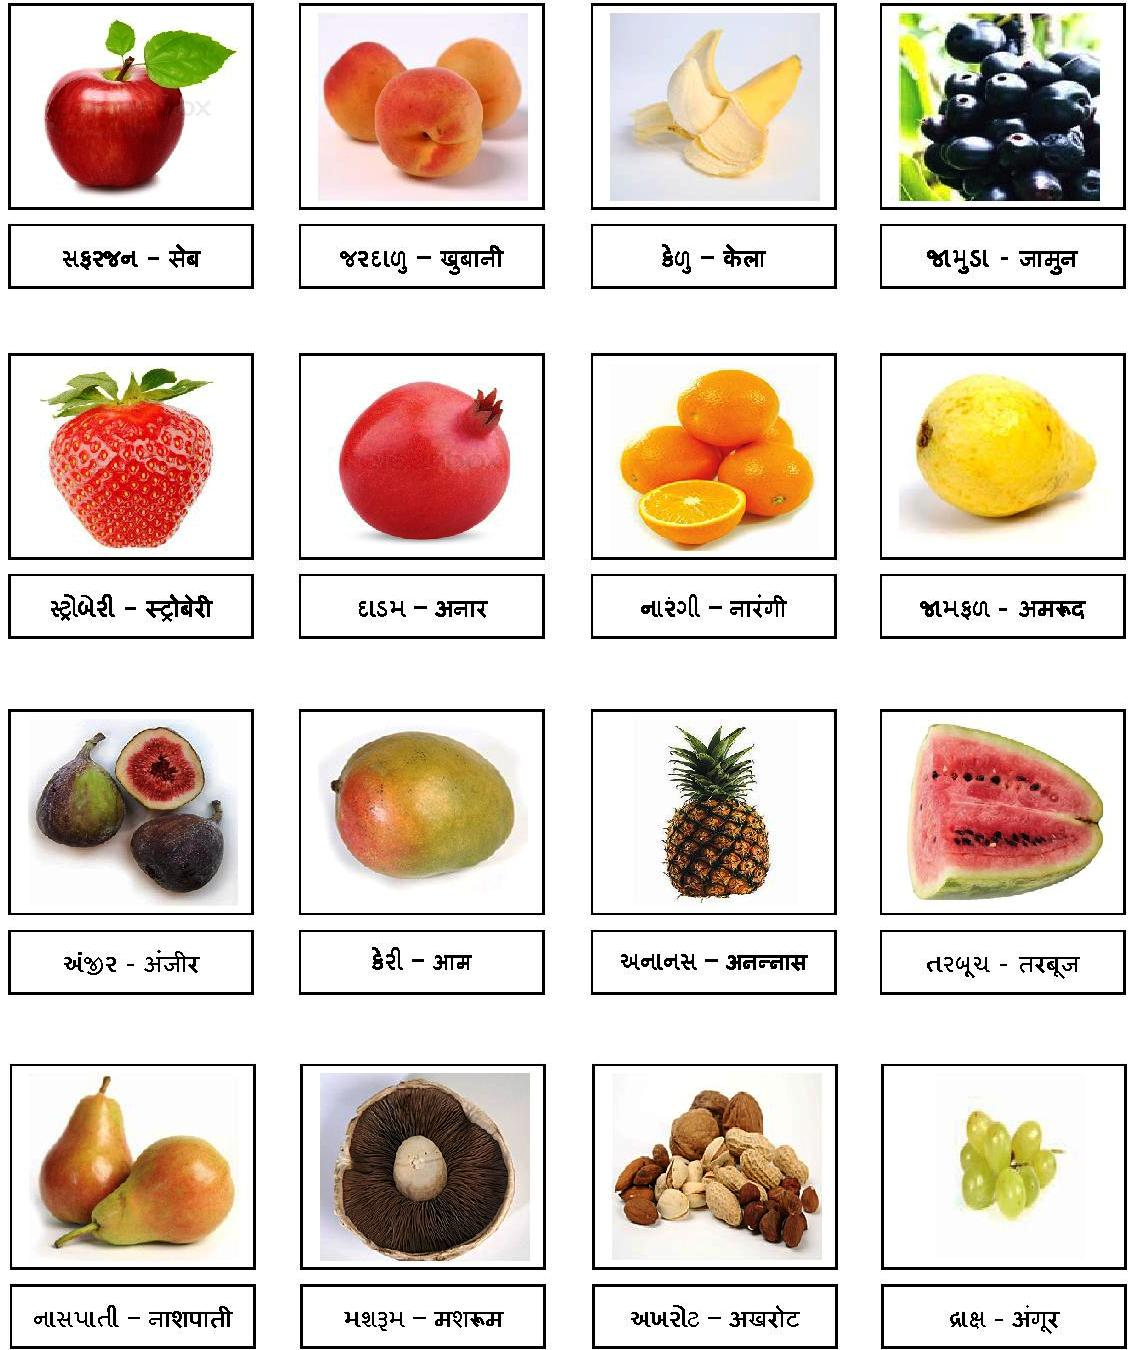 List Of Nutritious Food For Pregnant